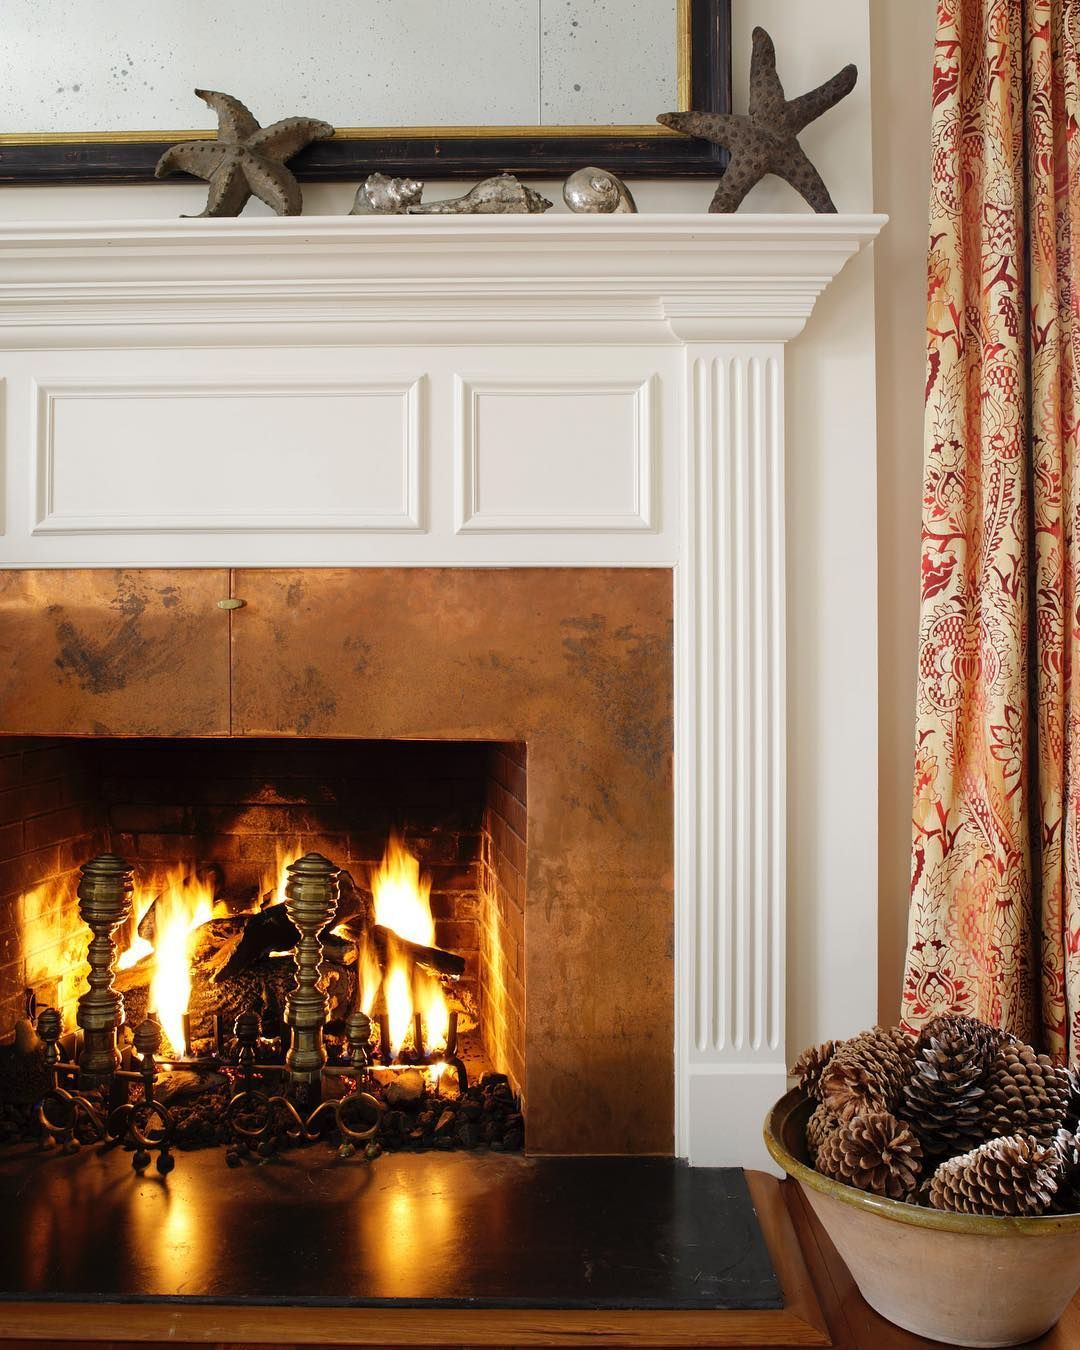 Copper Wall Ideas Copper Wall Fireplace I Die Fireplace Fireplace Wall Copper Wall